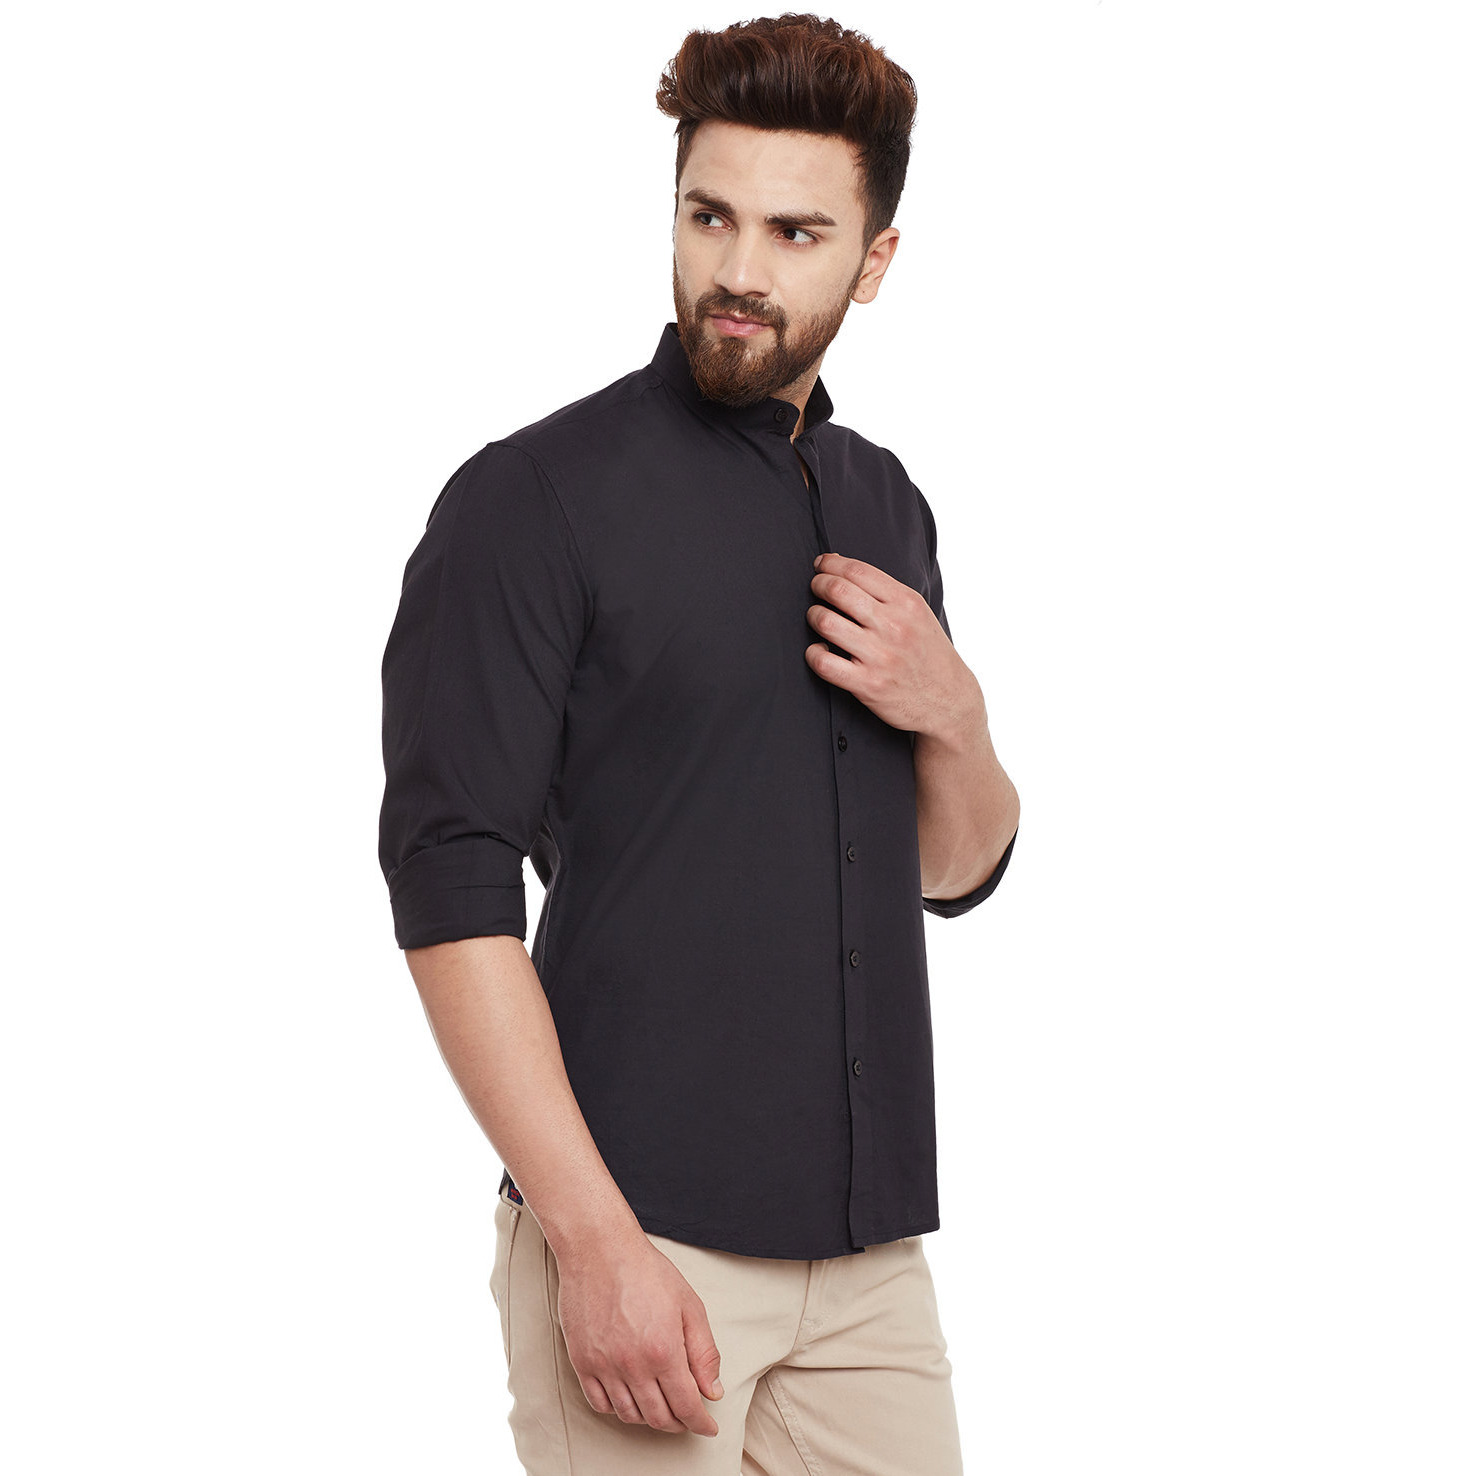 Mens Black Cotton Shirt Regular Fit Full sleeve Banded Collar